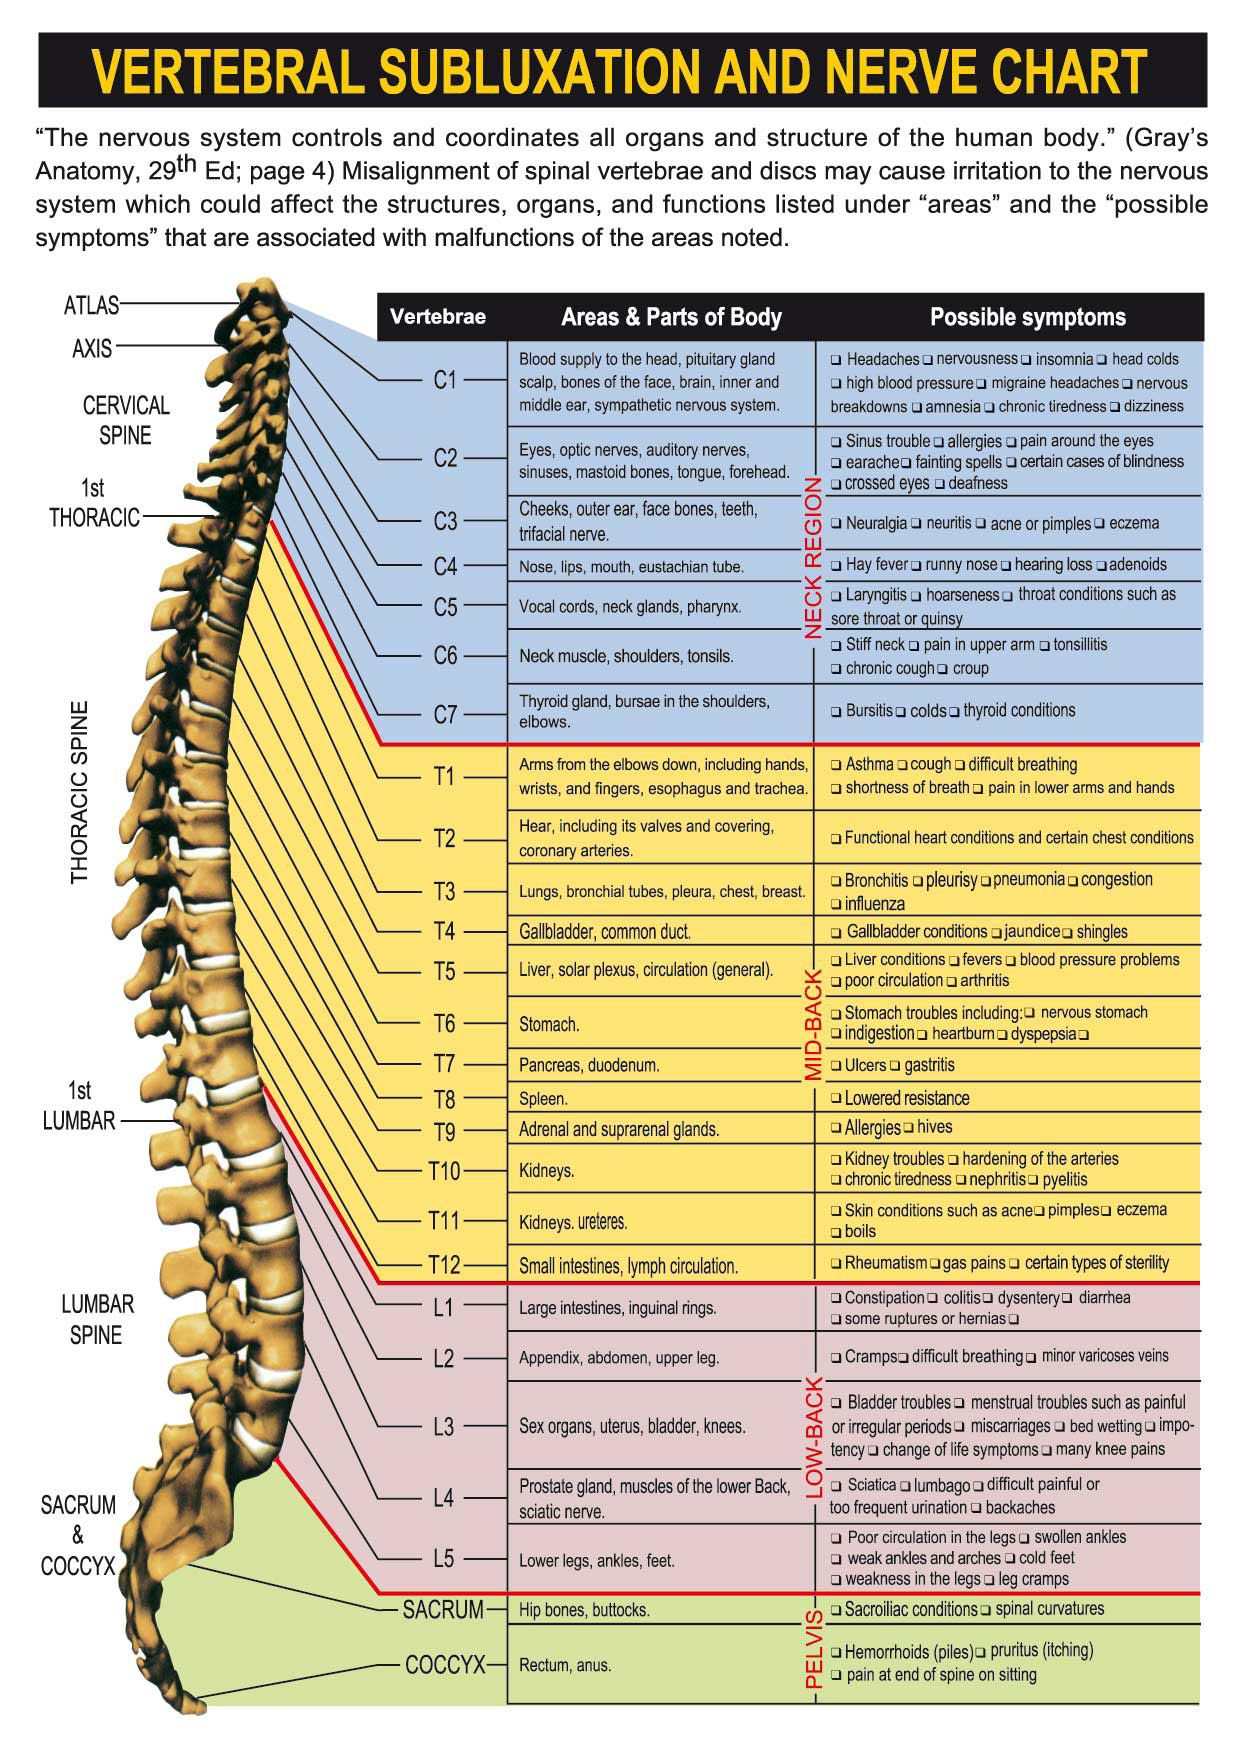 typical thoracic vertebrae diagram 2003 chevy malibu engine spinal nerve chart with effects of vertebral subluxations